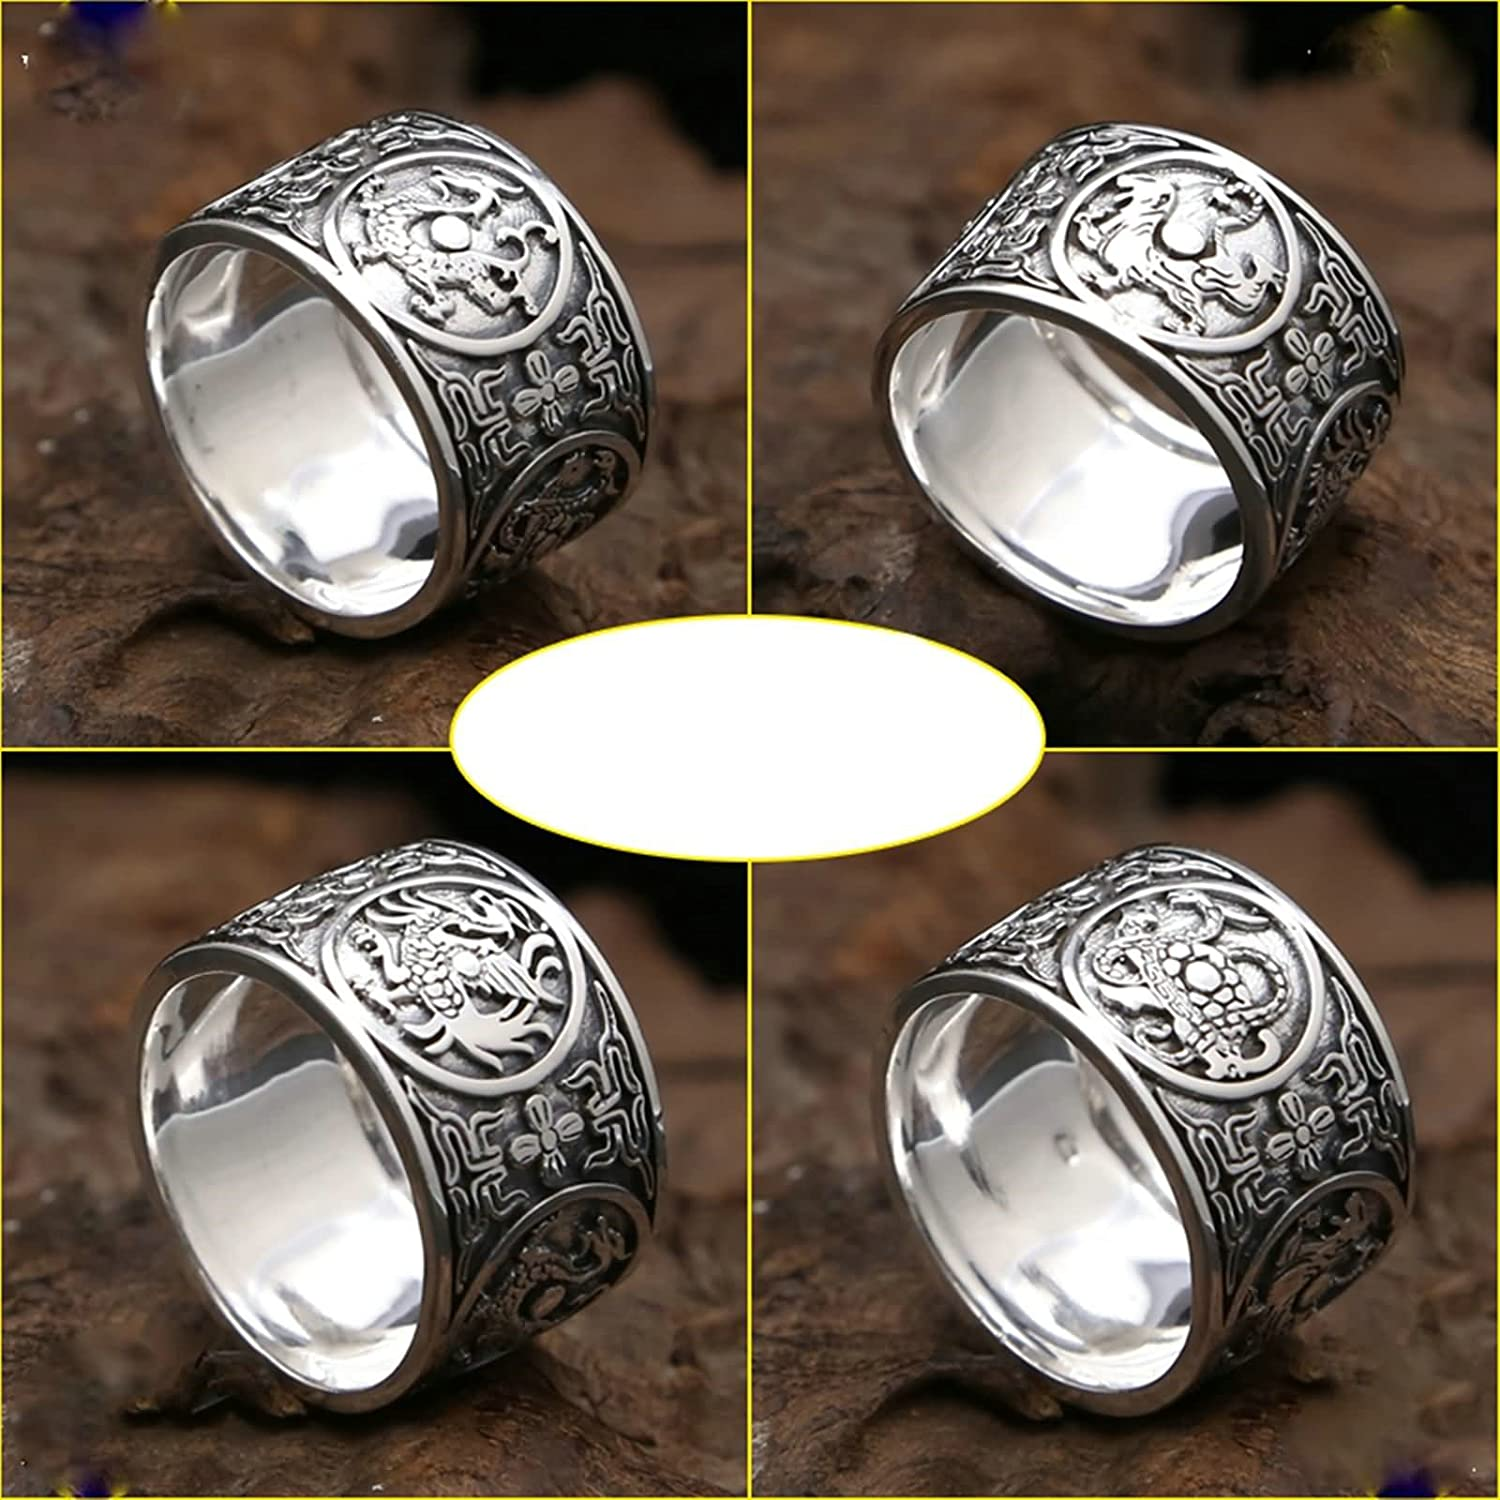 Aooaz Jewelry Ring Band for Men Silver Material Ring Retro Animal Dragon Ring